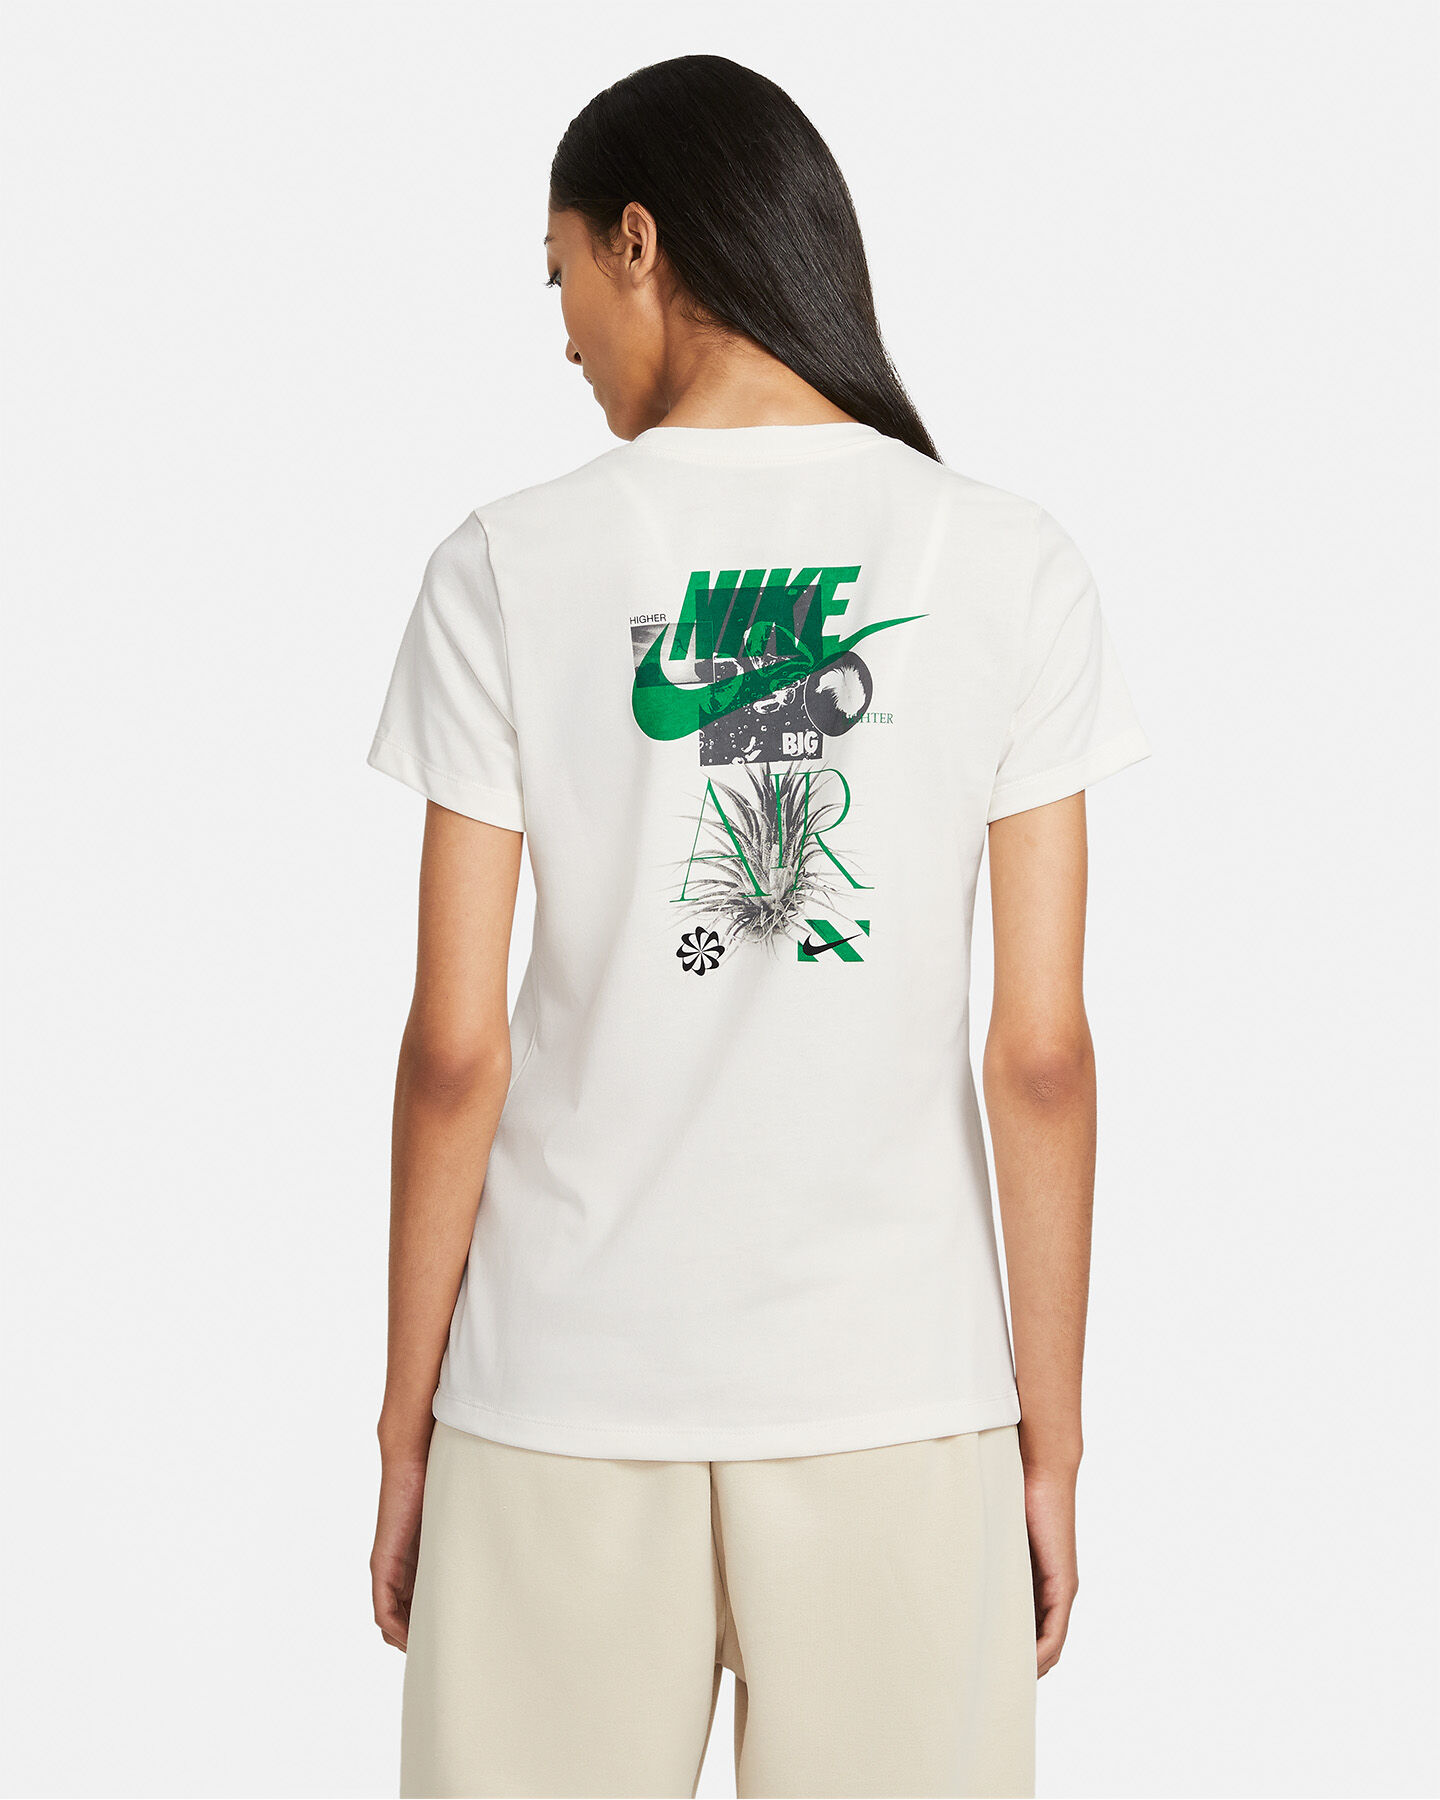 T-Shirt NIKE LOGO EARTH DAY W S5267755 scatto 1